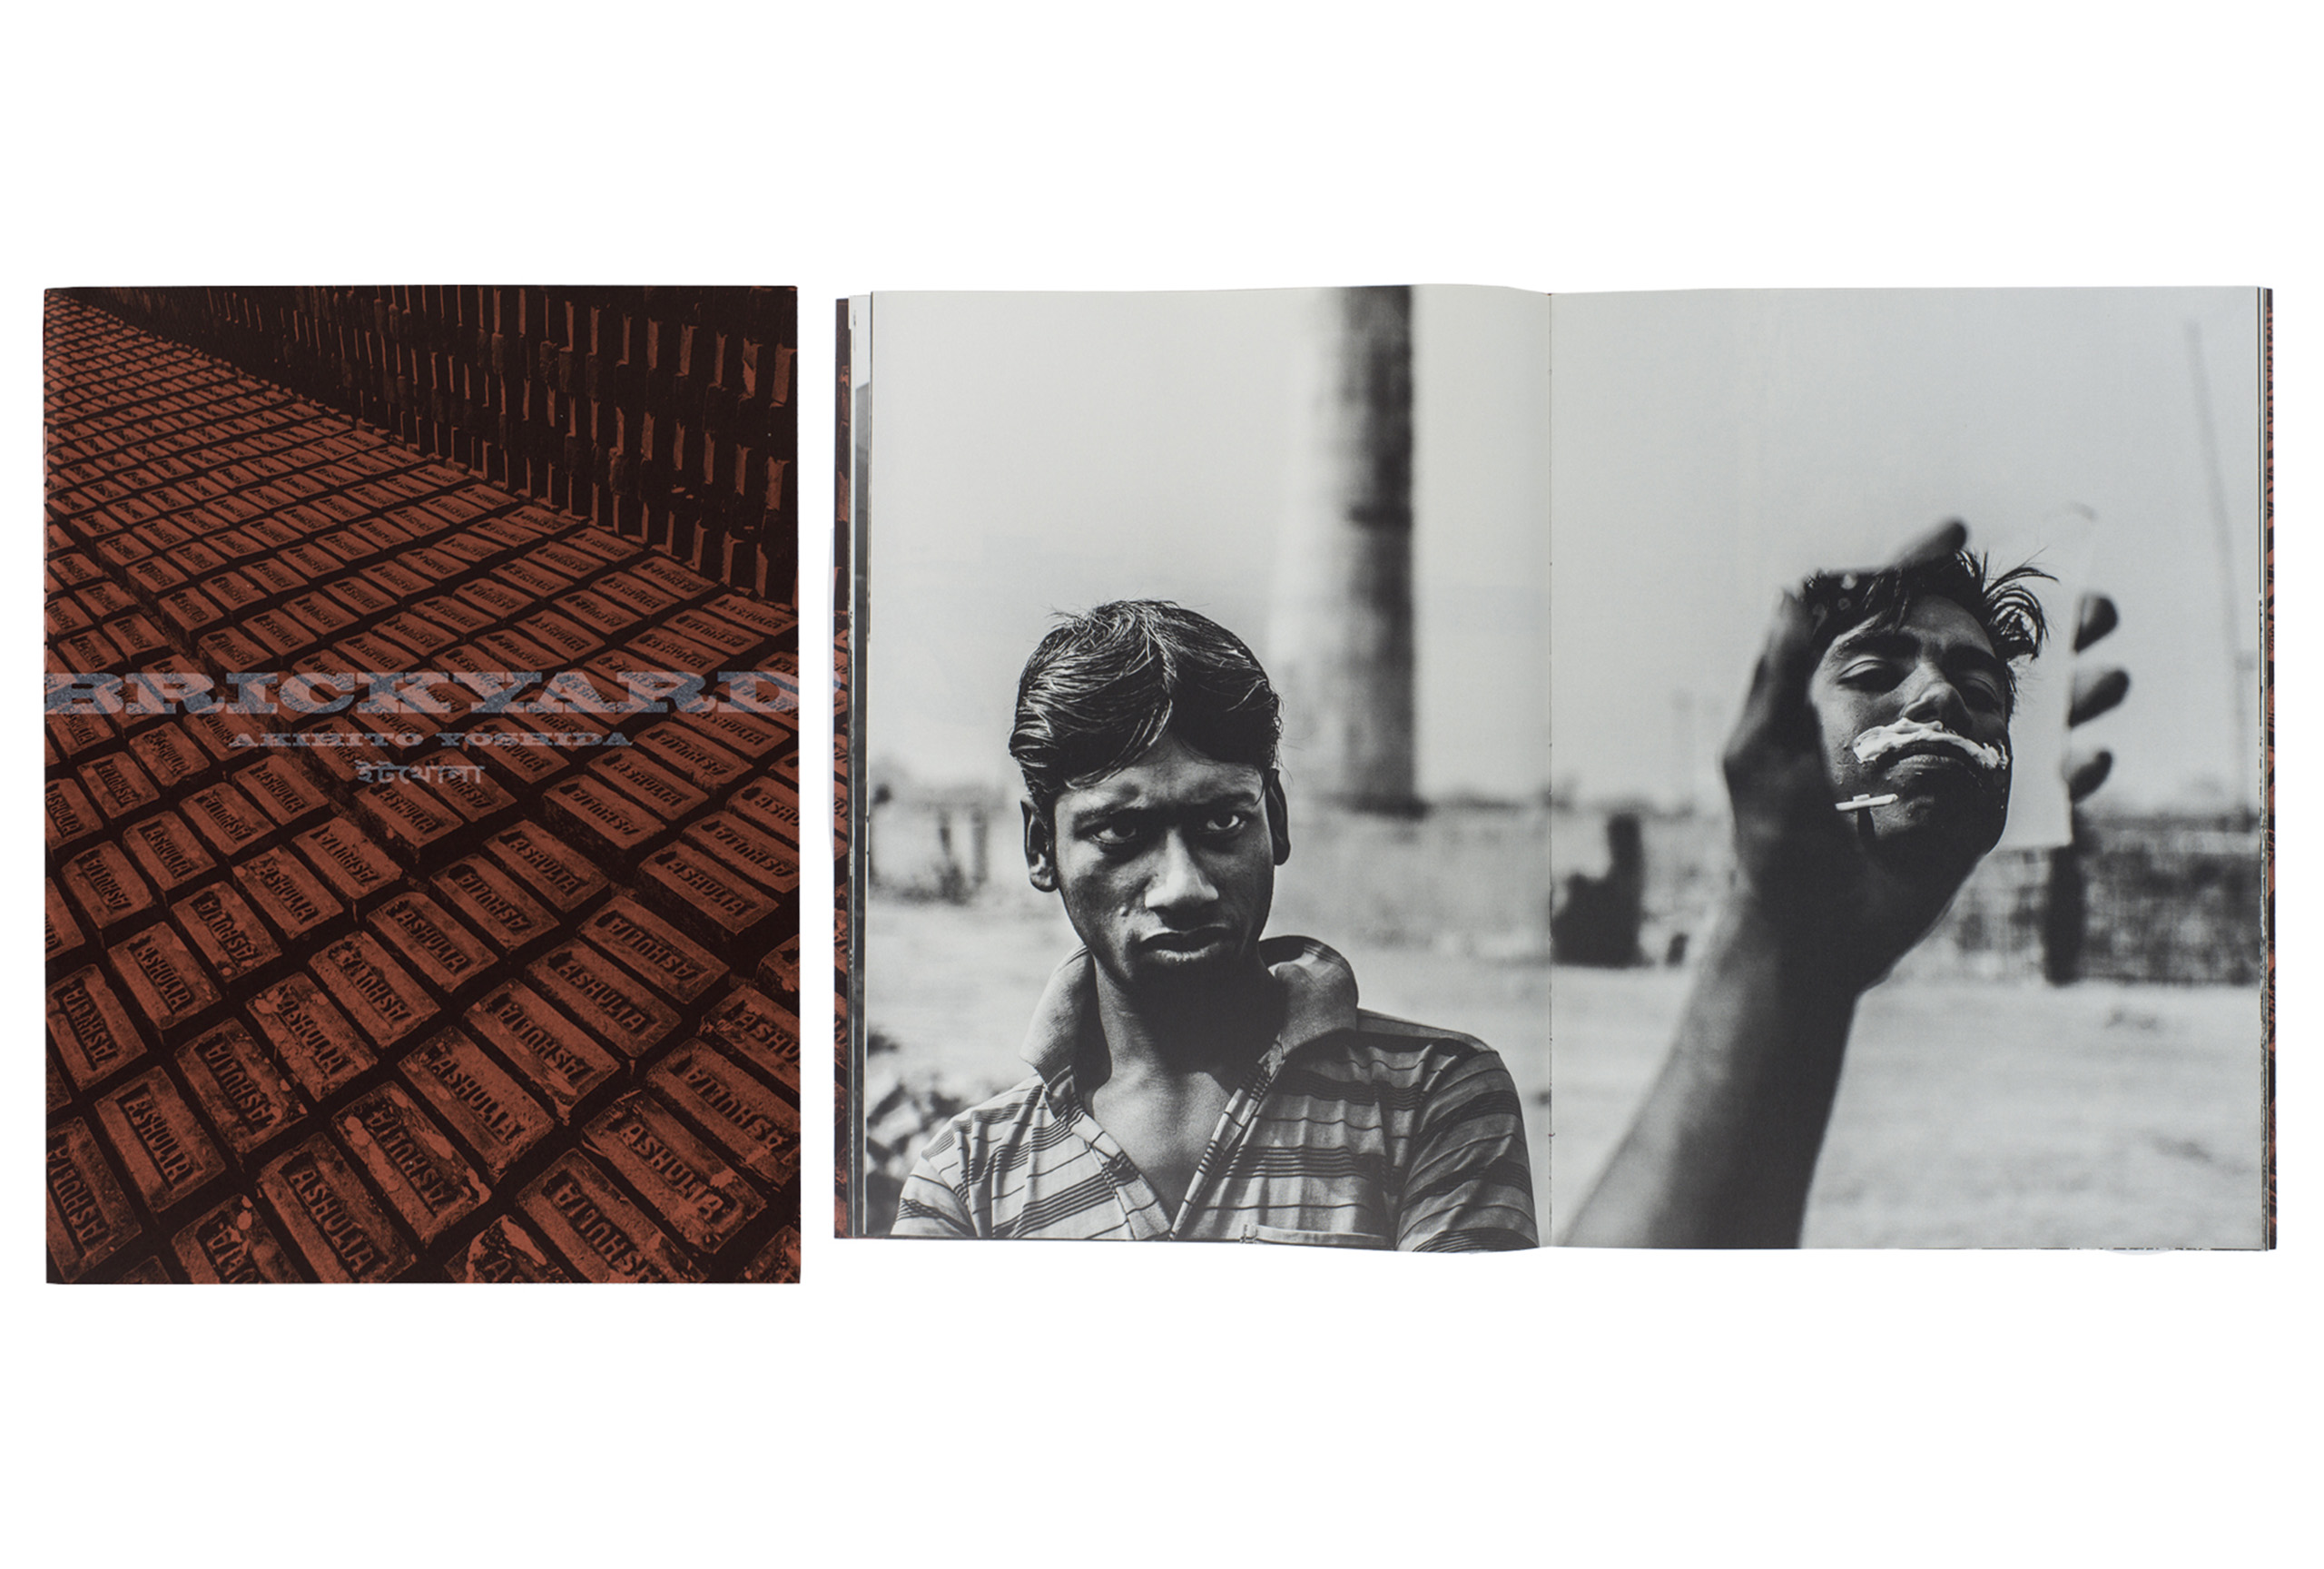 Brick Yard by Akihito Yoshida, self-published. Short-listed title for First PhotoBook.